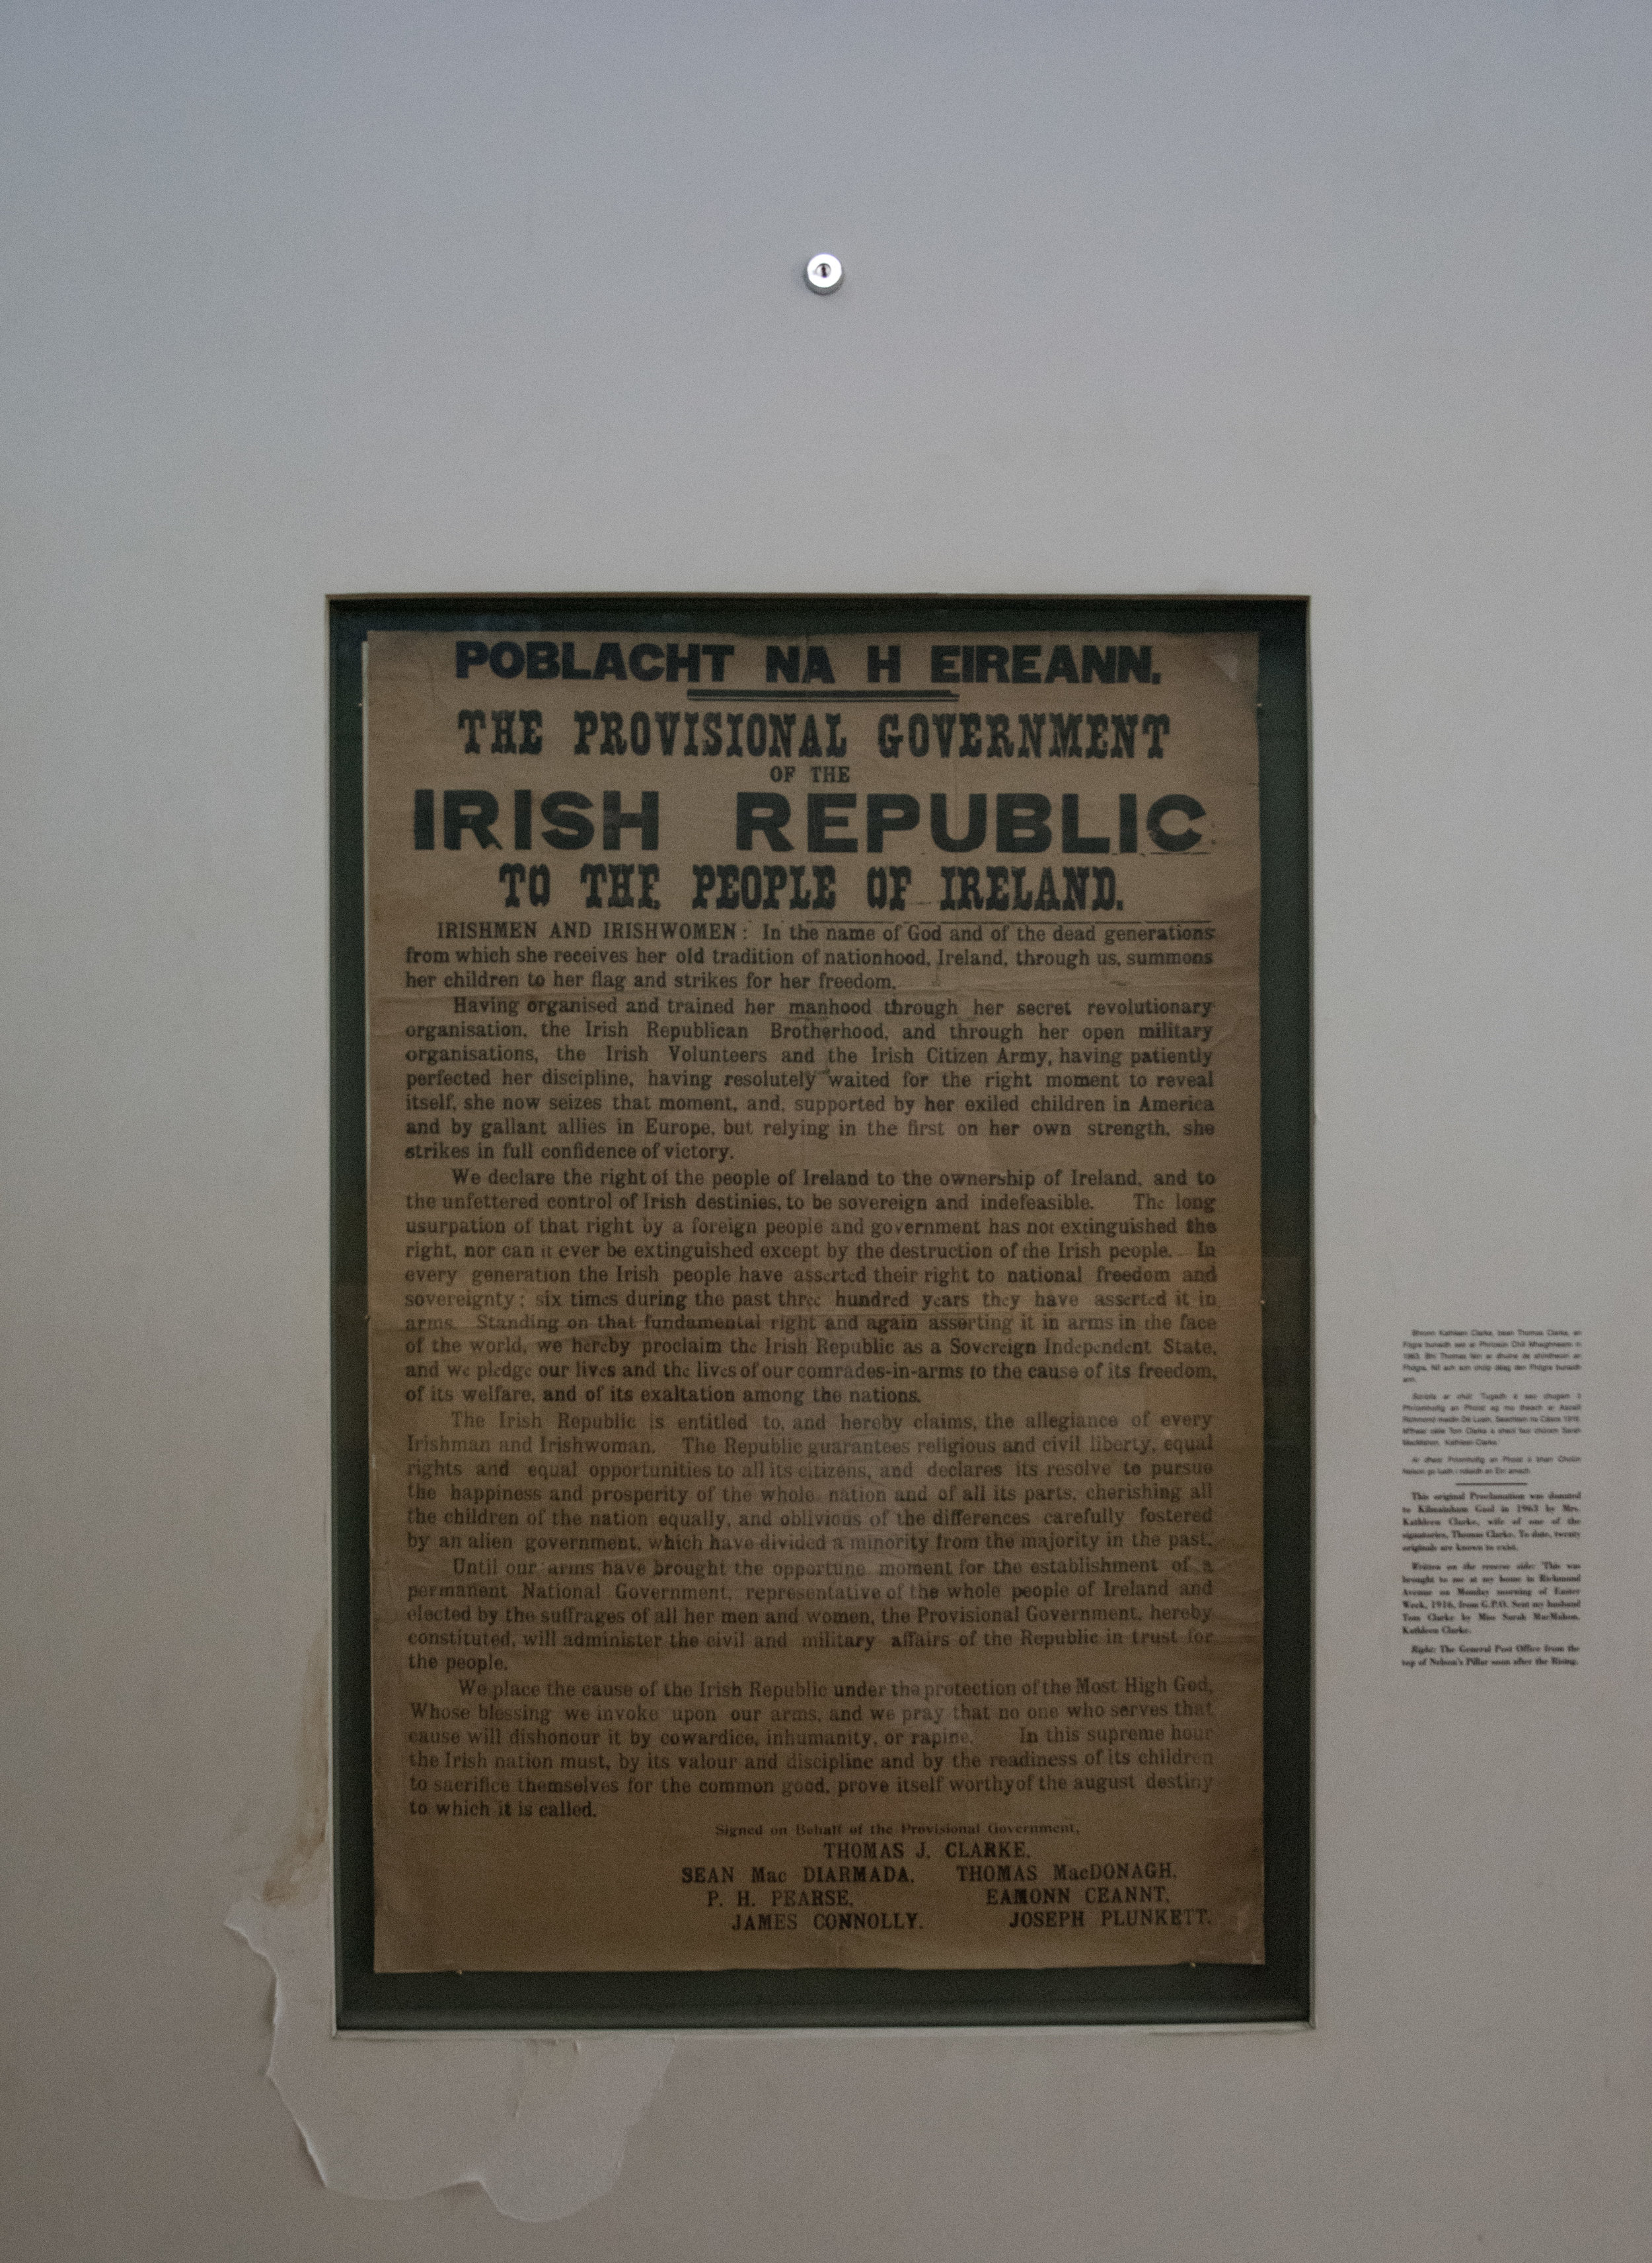 Inside the museum at Kilmainham was one of the original Proclaimations.